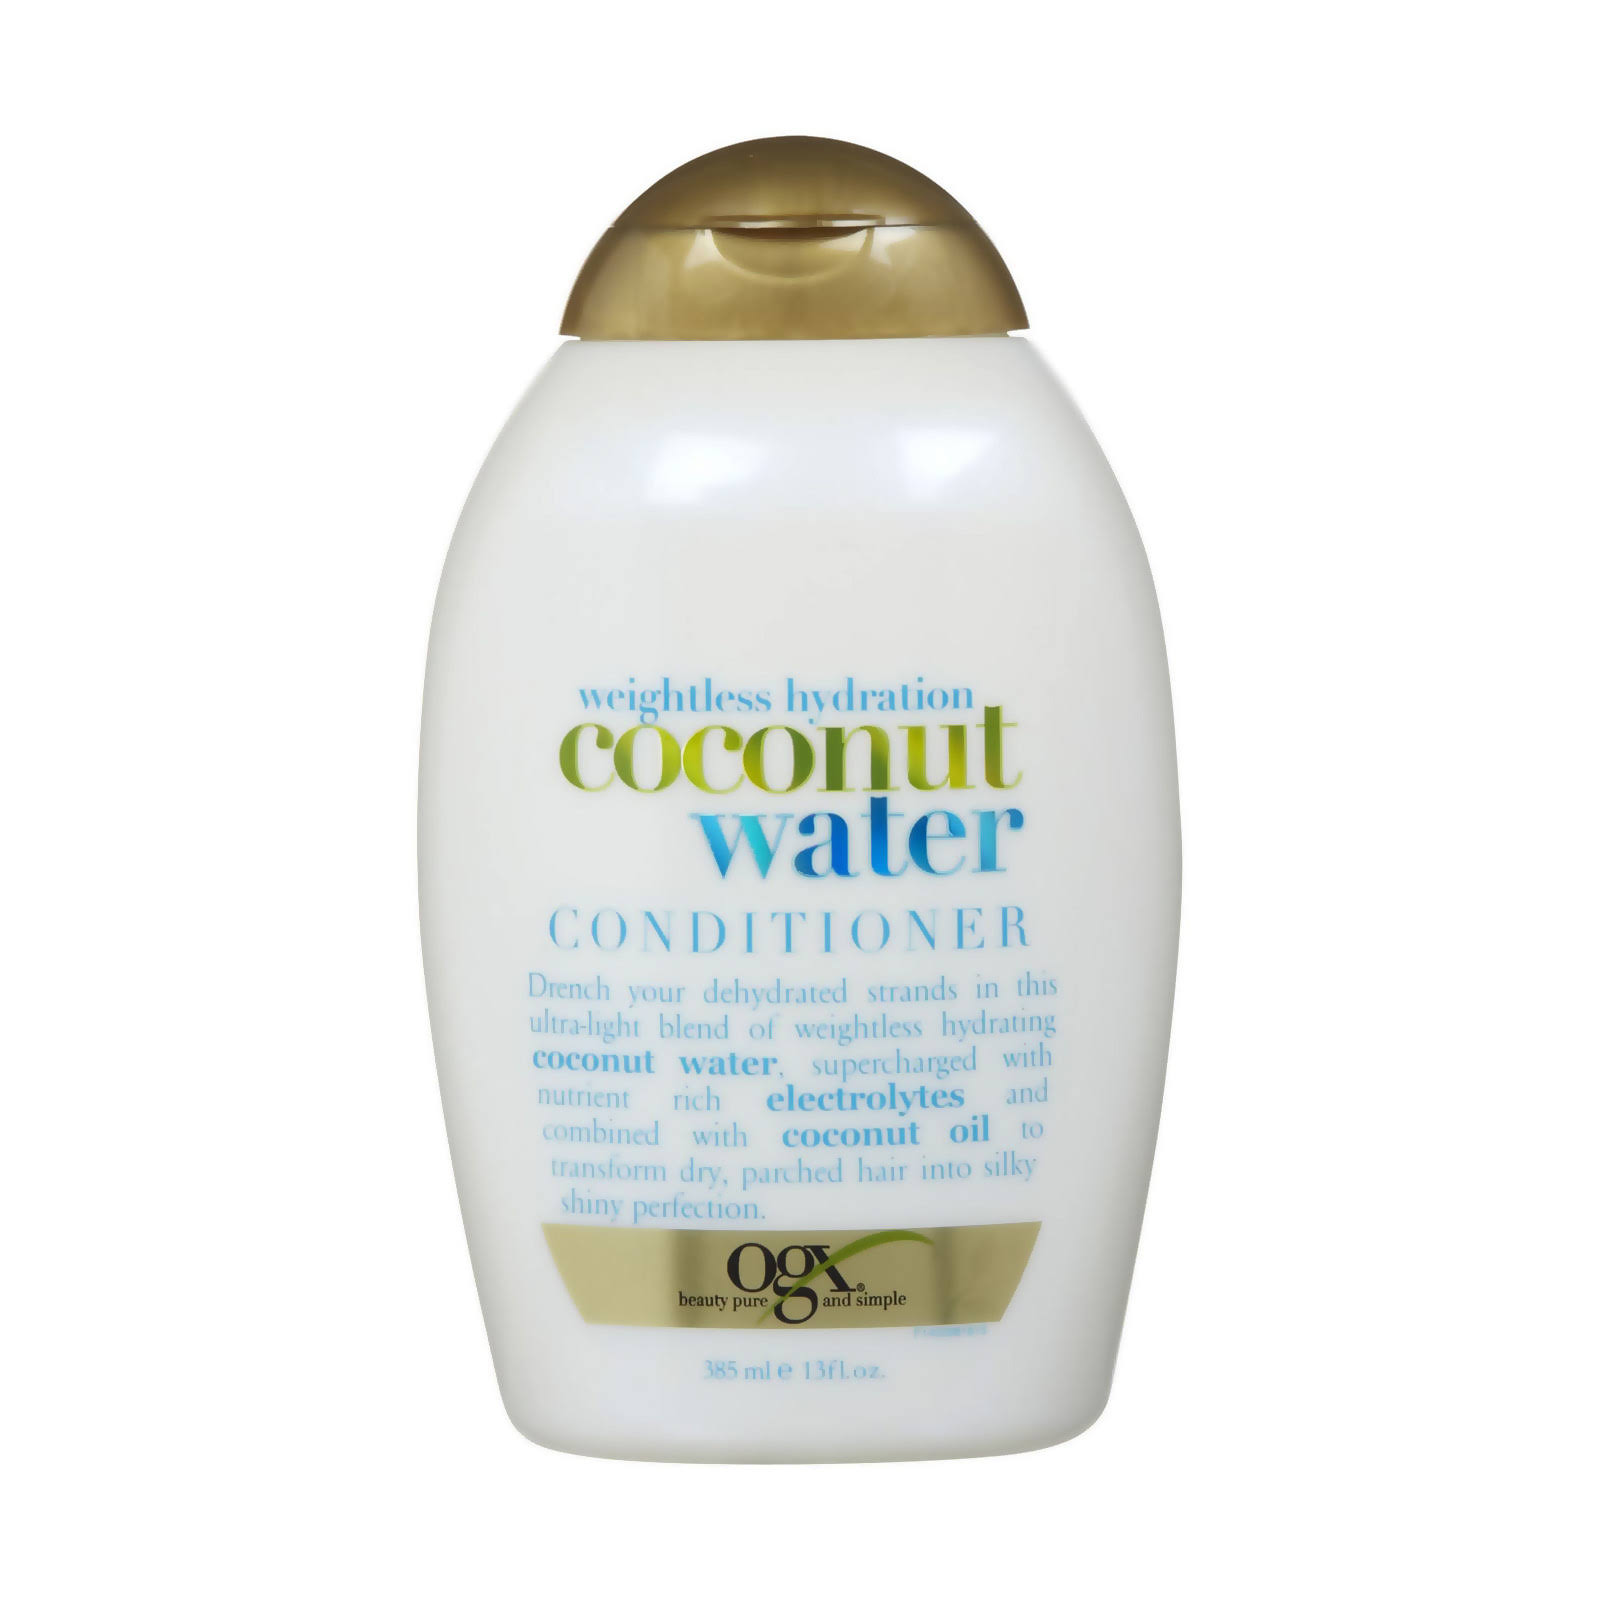 Ogx Weightless Hydration Plus Coconut Water Conditioner - 13oz